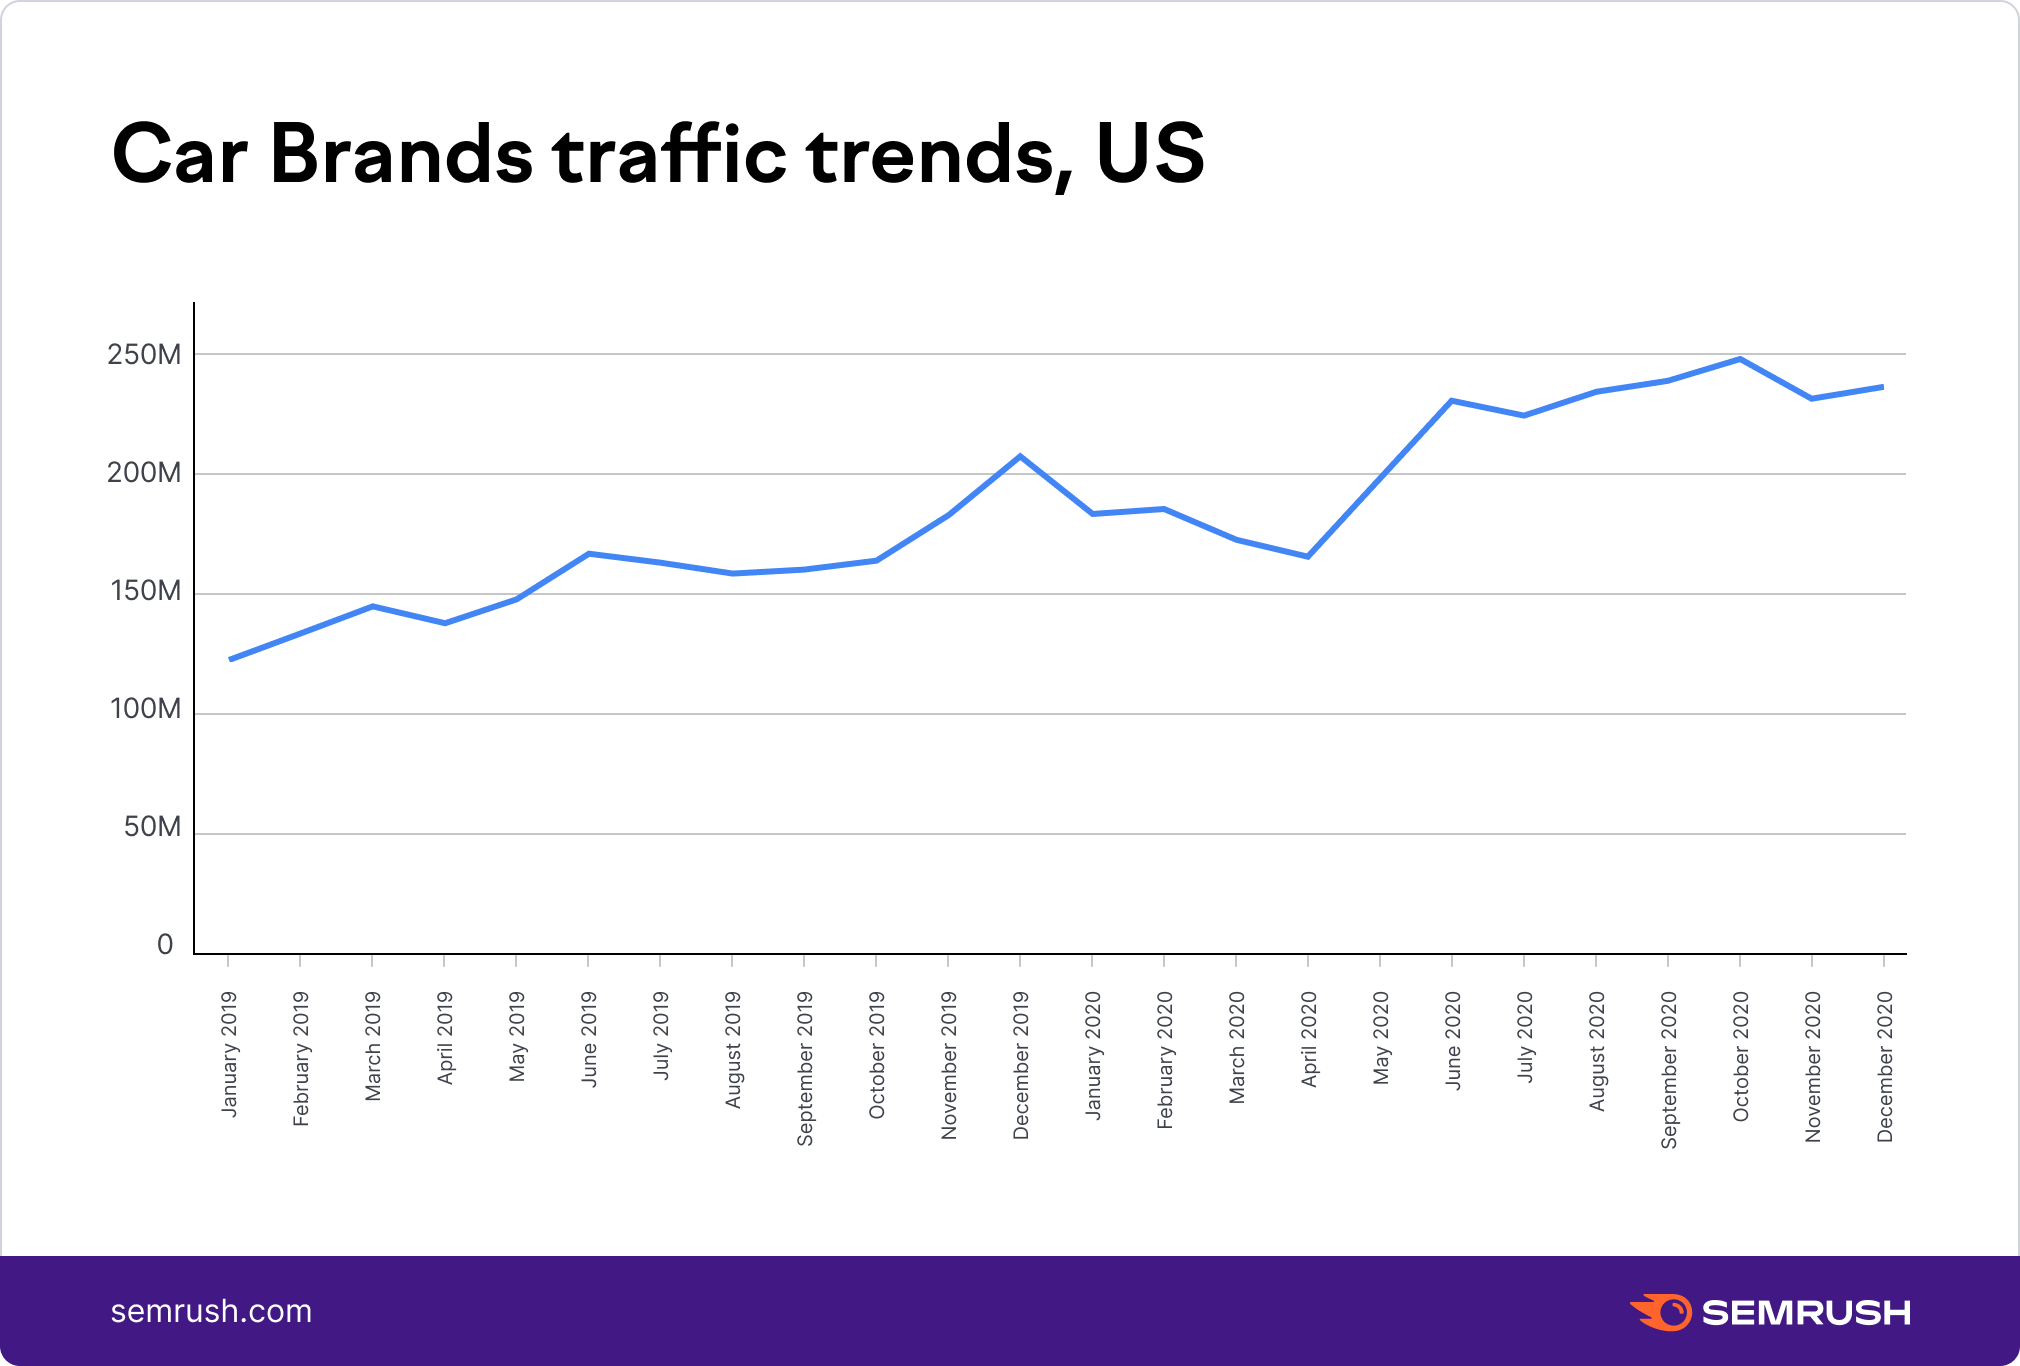 Car Brands traffic trends, US